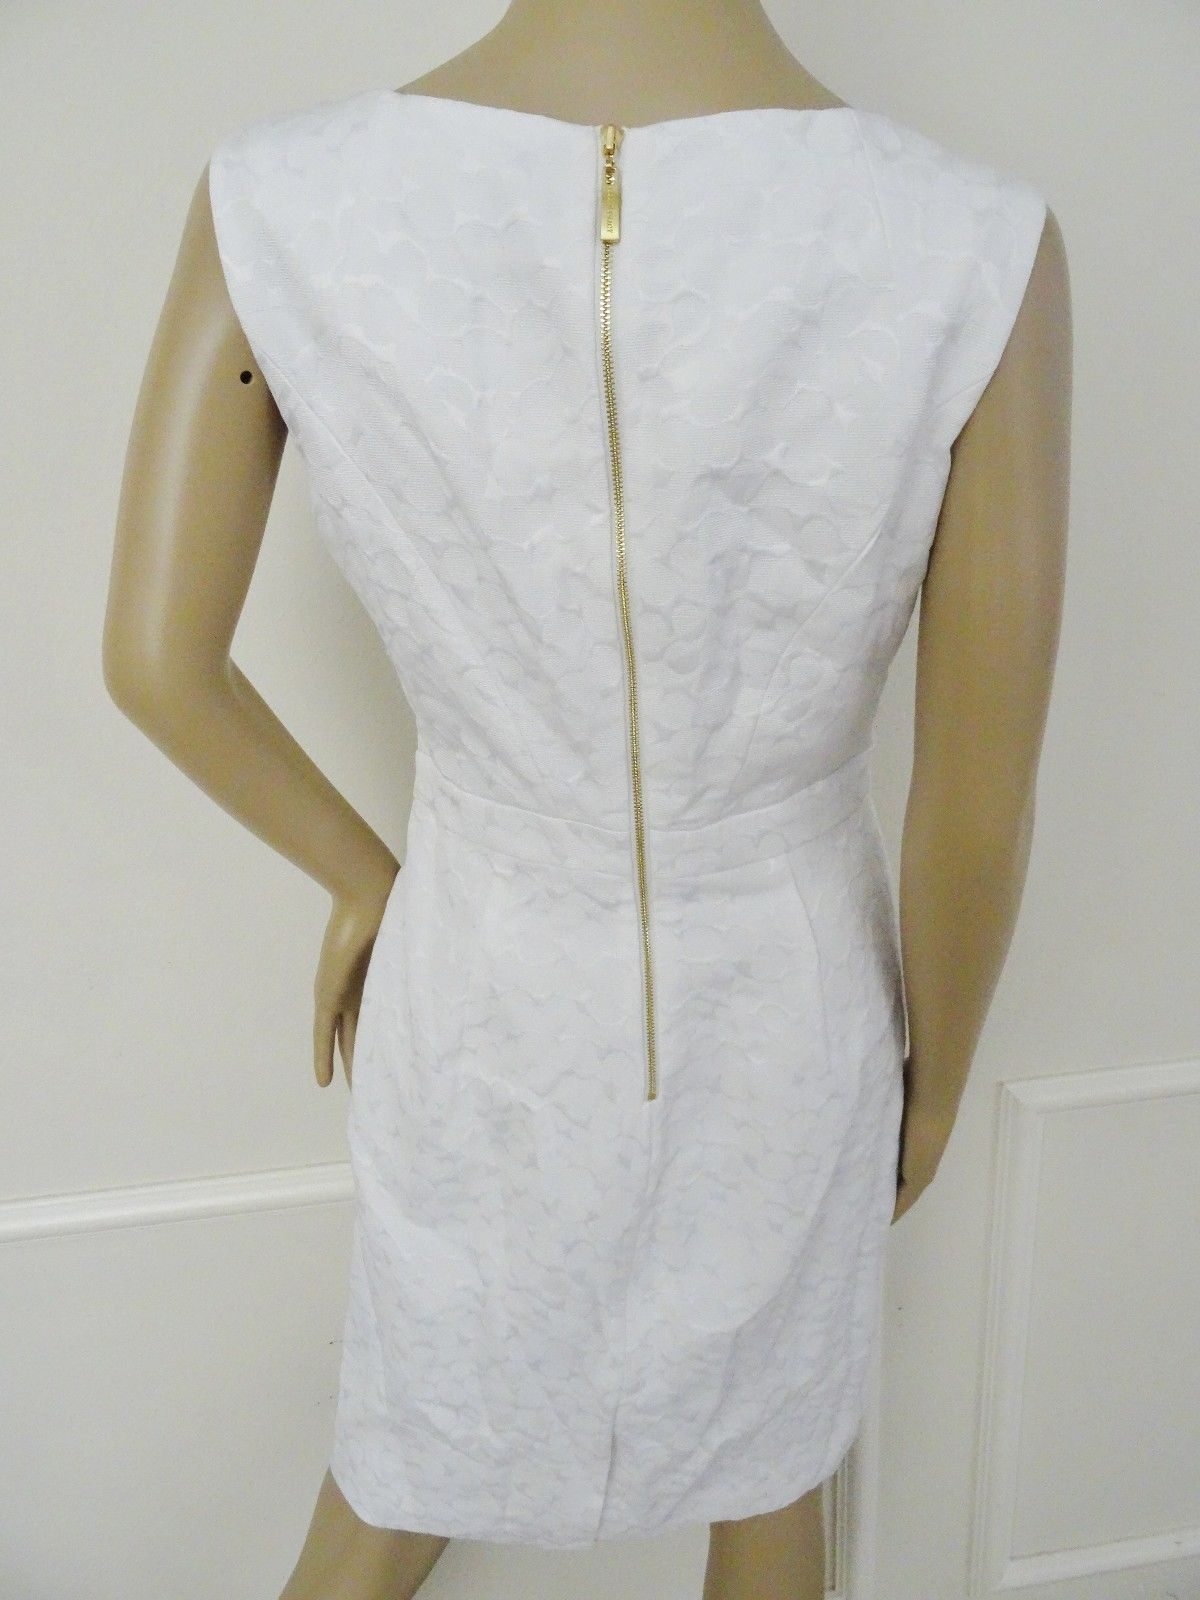 Nwt Ellen Tracy Jacquard Sheath Cocktail Party Dress Sz 8 White $118